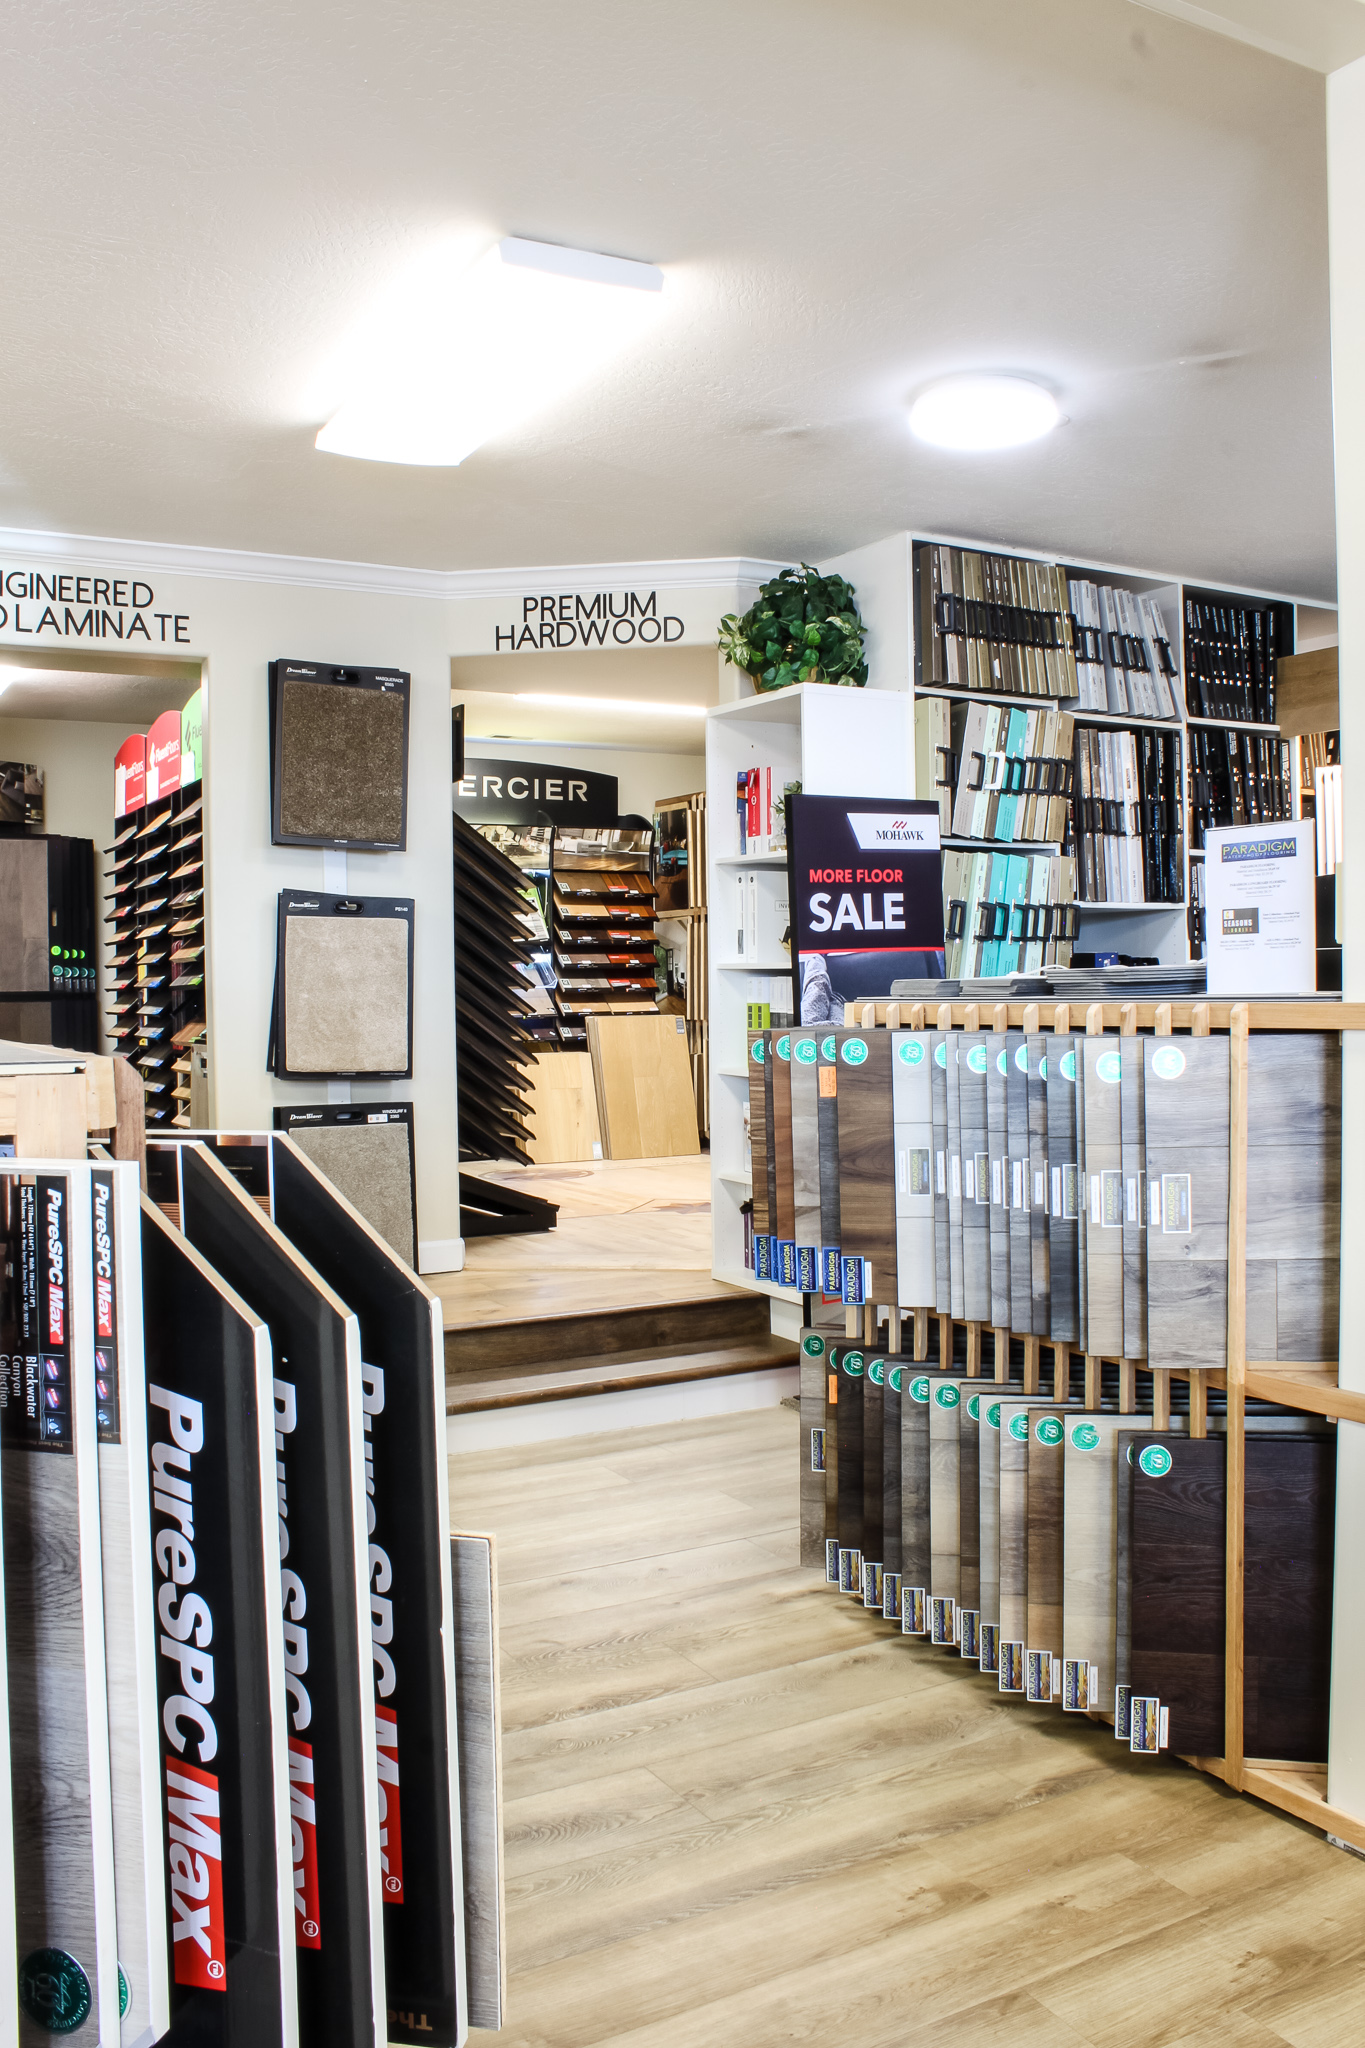 The showroom at PFC